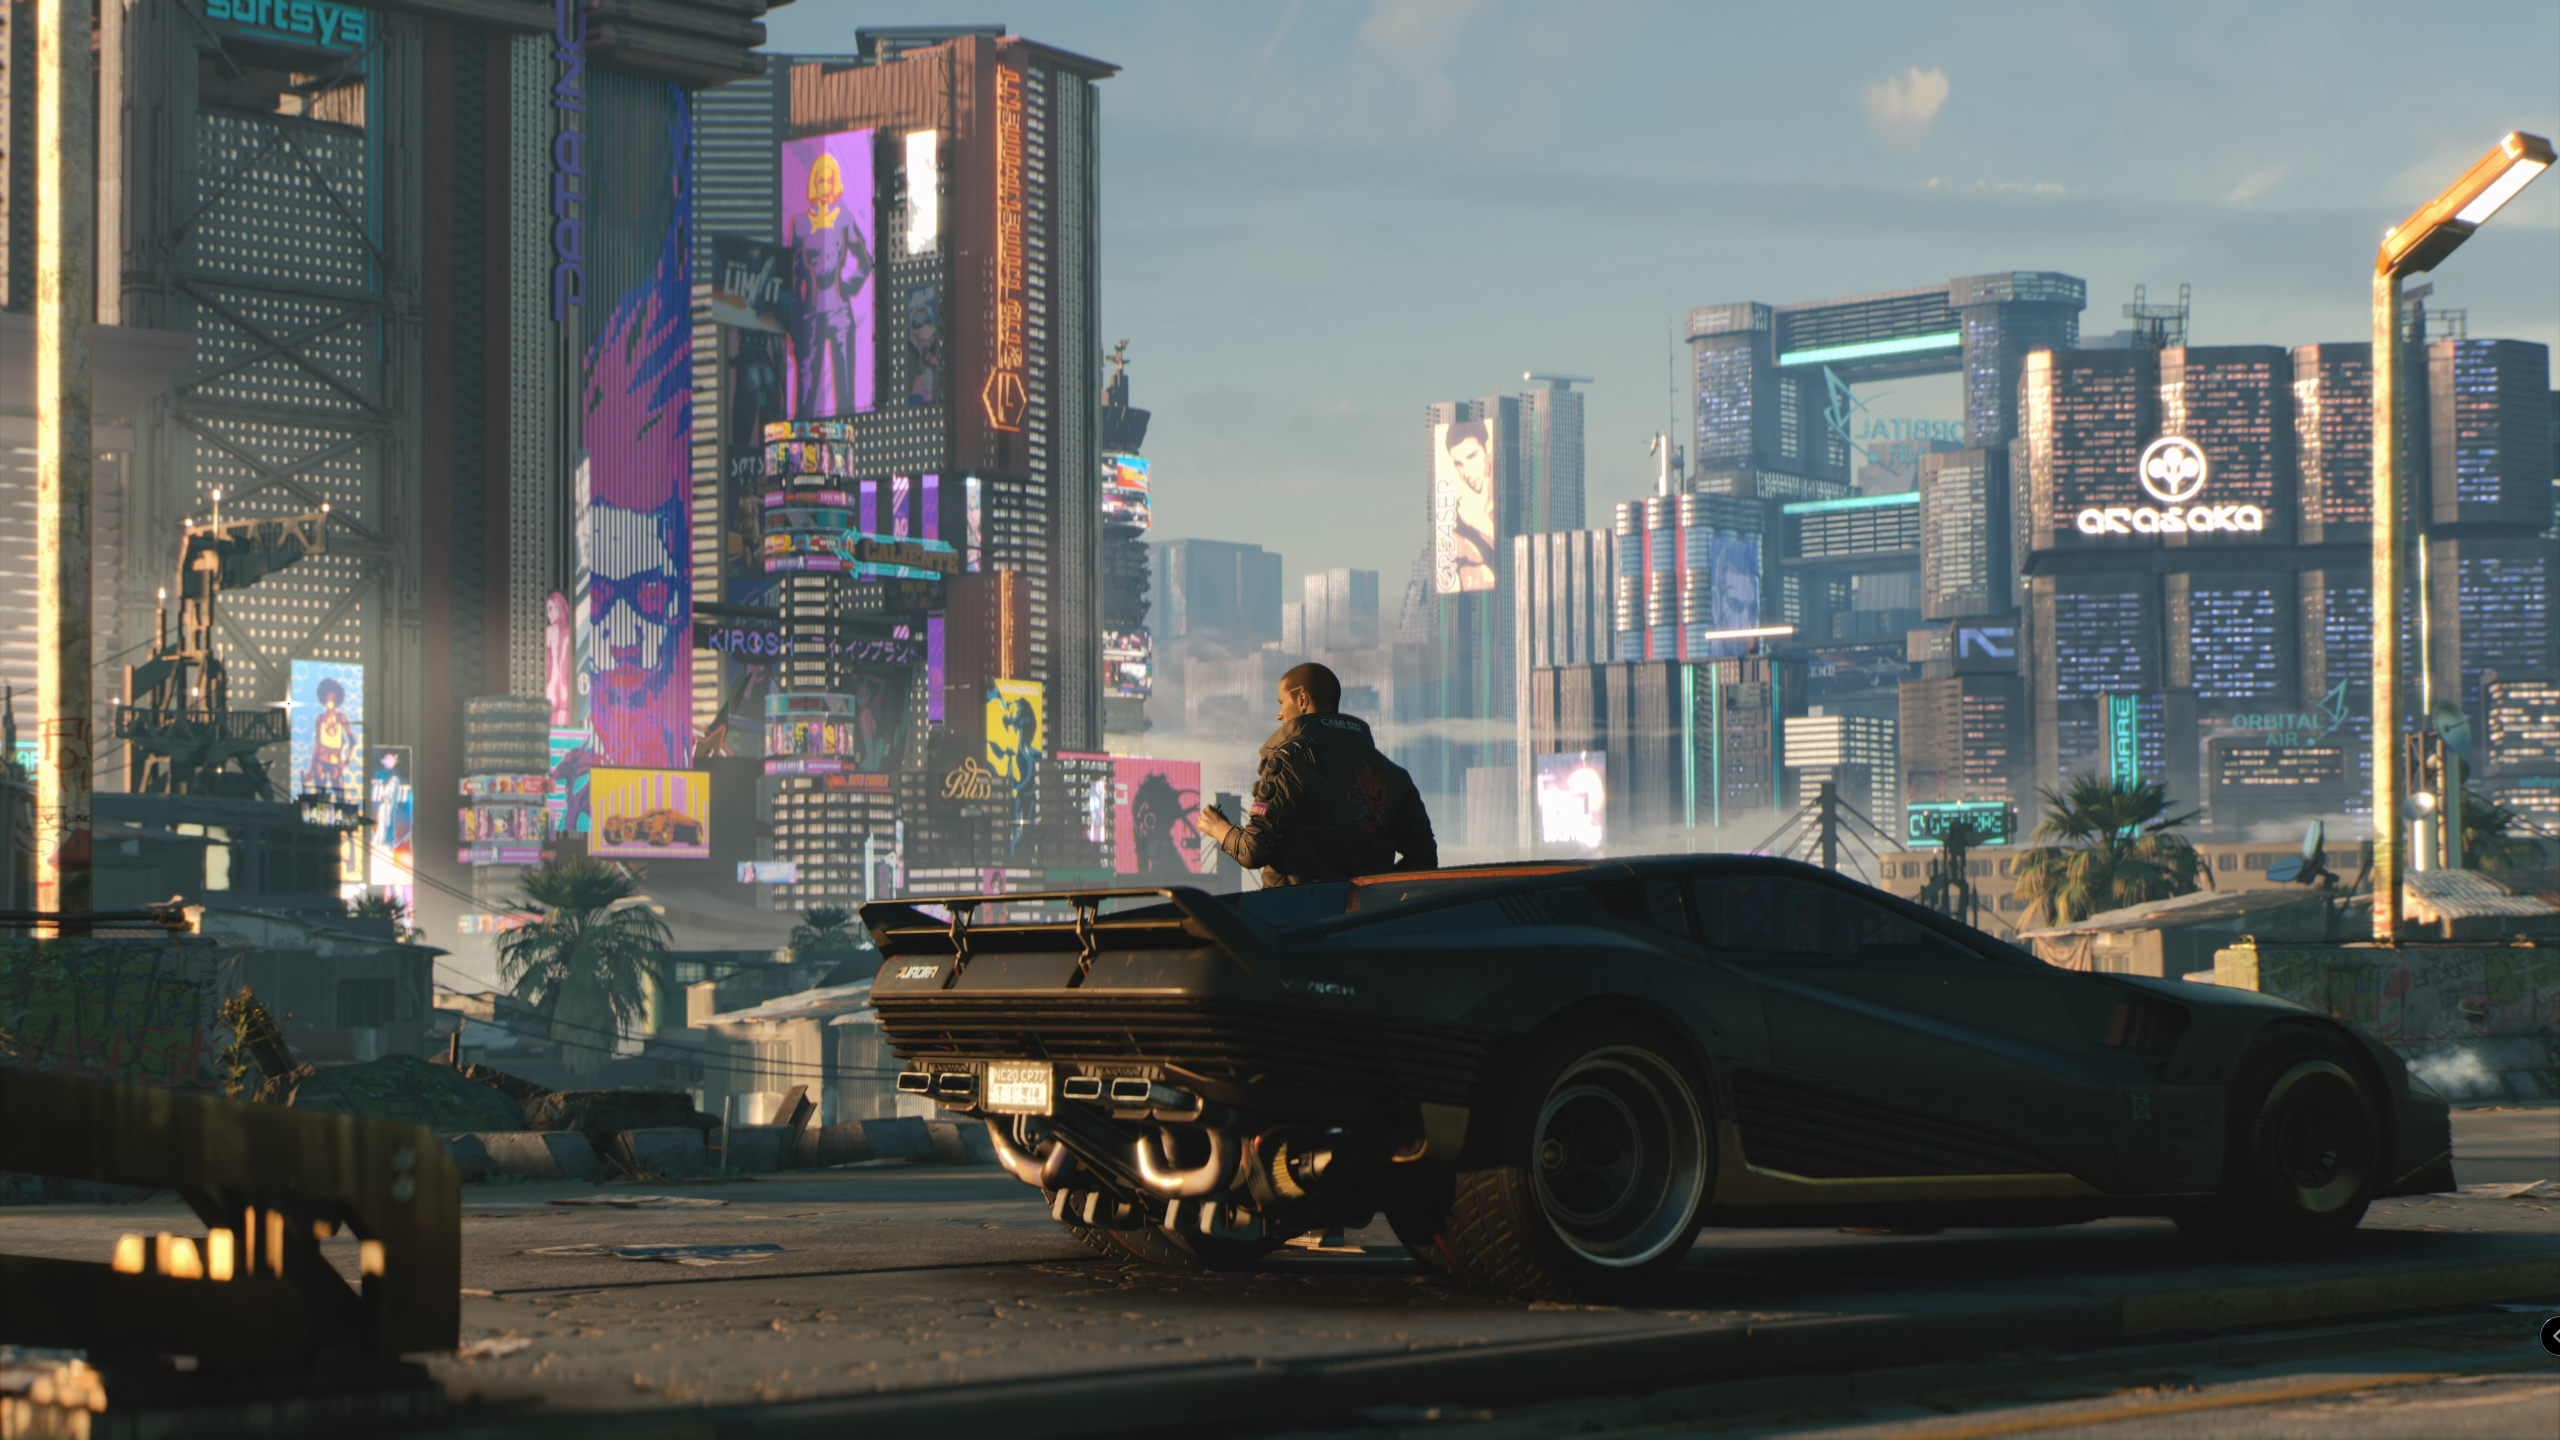 2018 cyberpunk 2077 car hd games 4k wallpapers images backgrounds photos and pictures - Cyberpunk 2077 wallpaper 4k ...